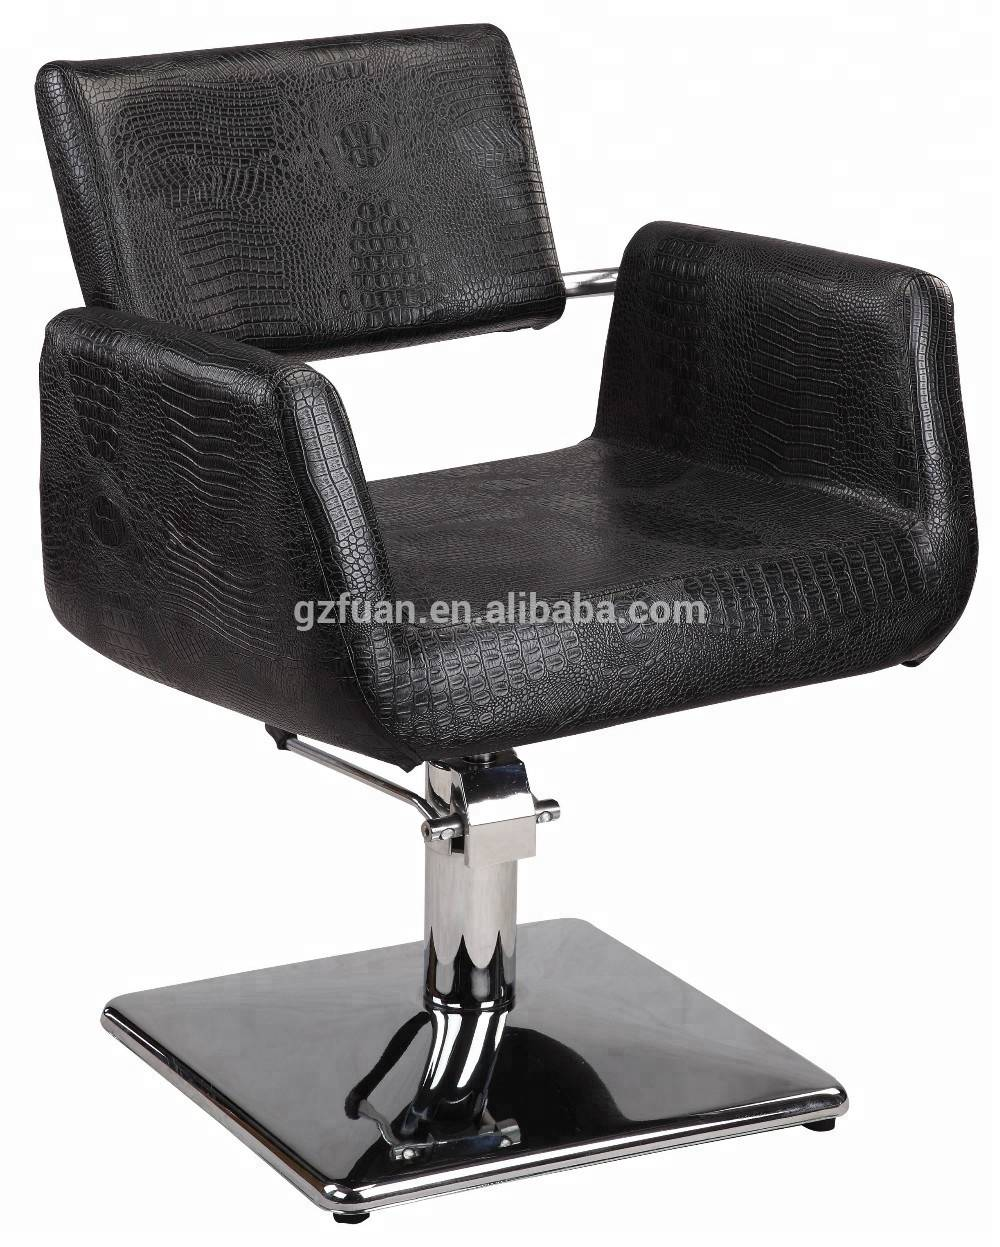 Hair salon equipment furniture men women used cheap hairdressing chair barber chair for sale